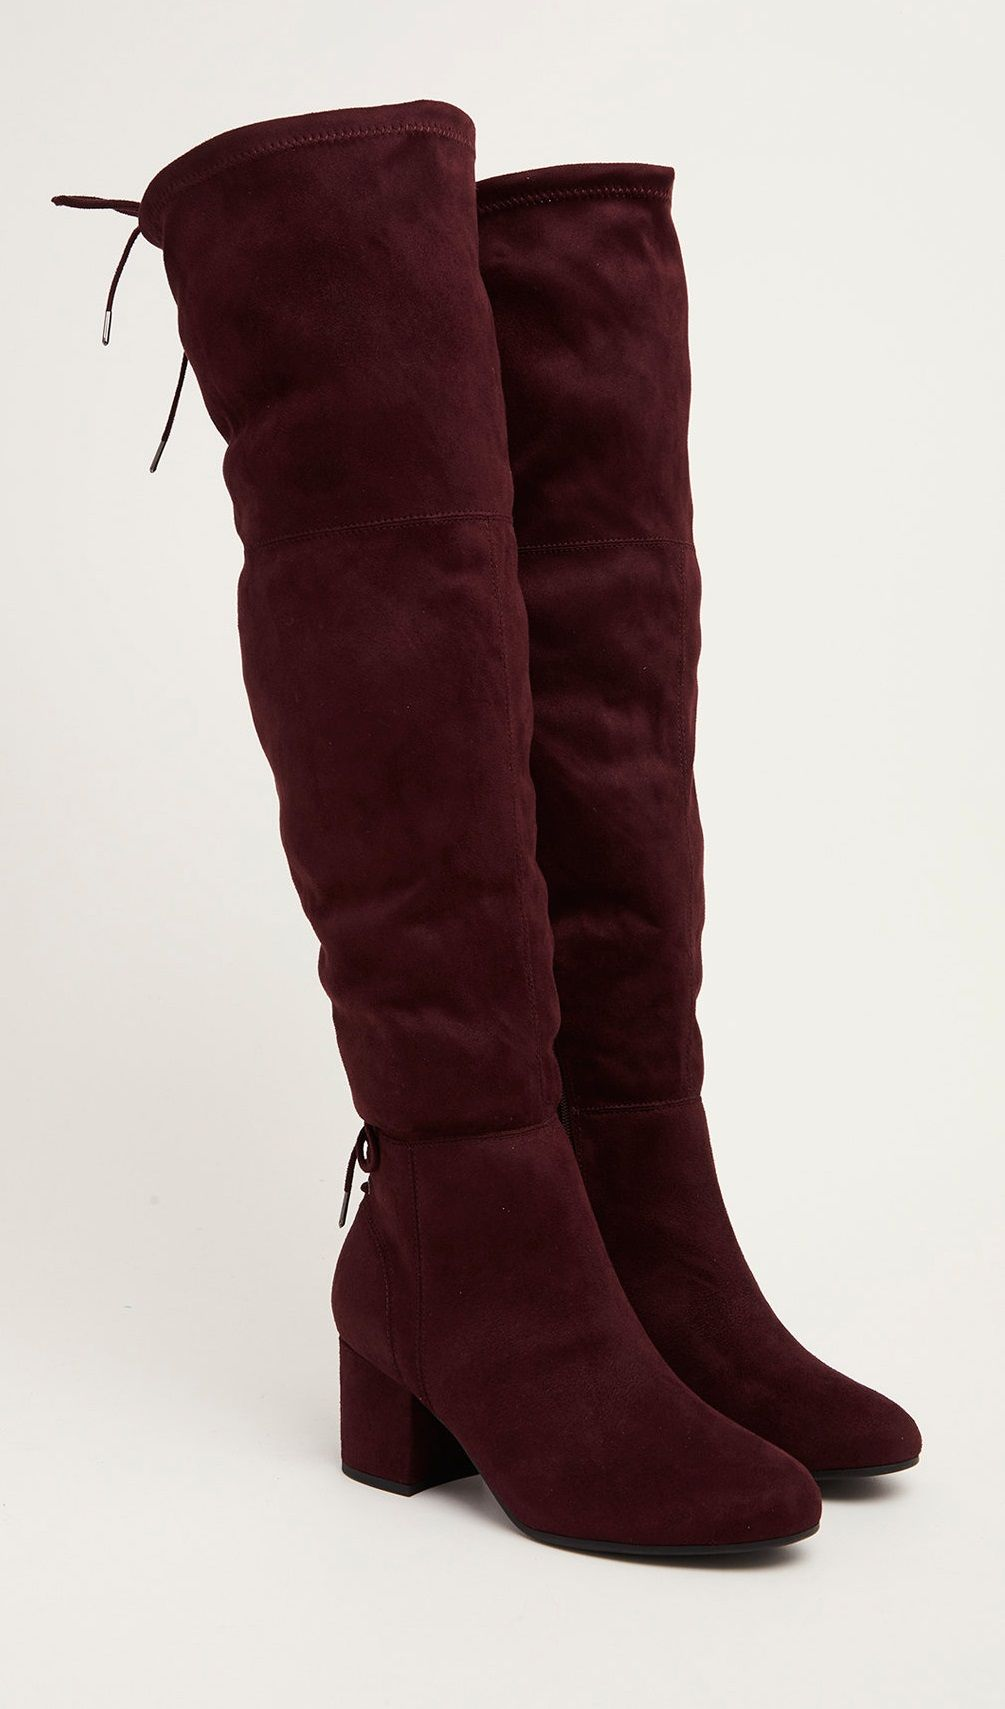 6e45cecdacb Plus Size Wide Calf Over-the-Knee Boots #widecalf | Stitch Fix ...